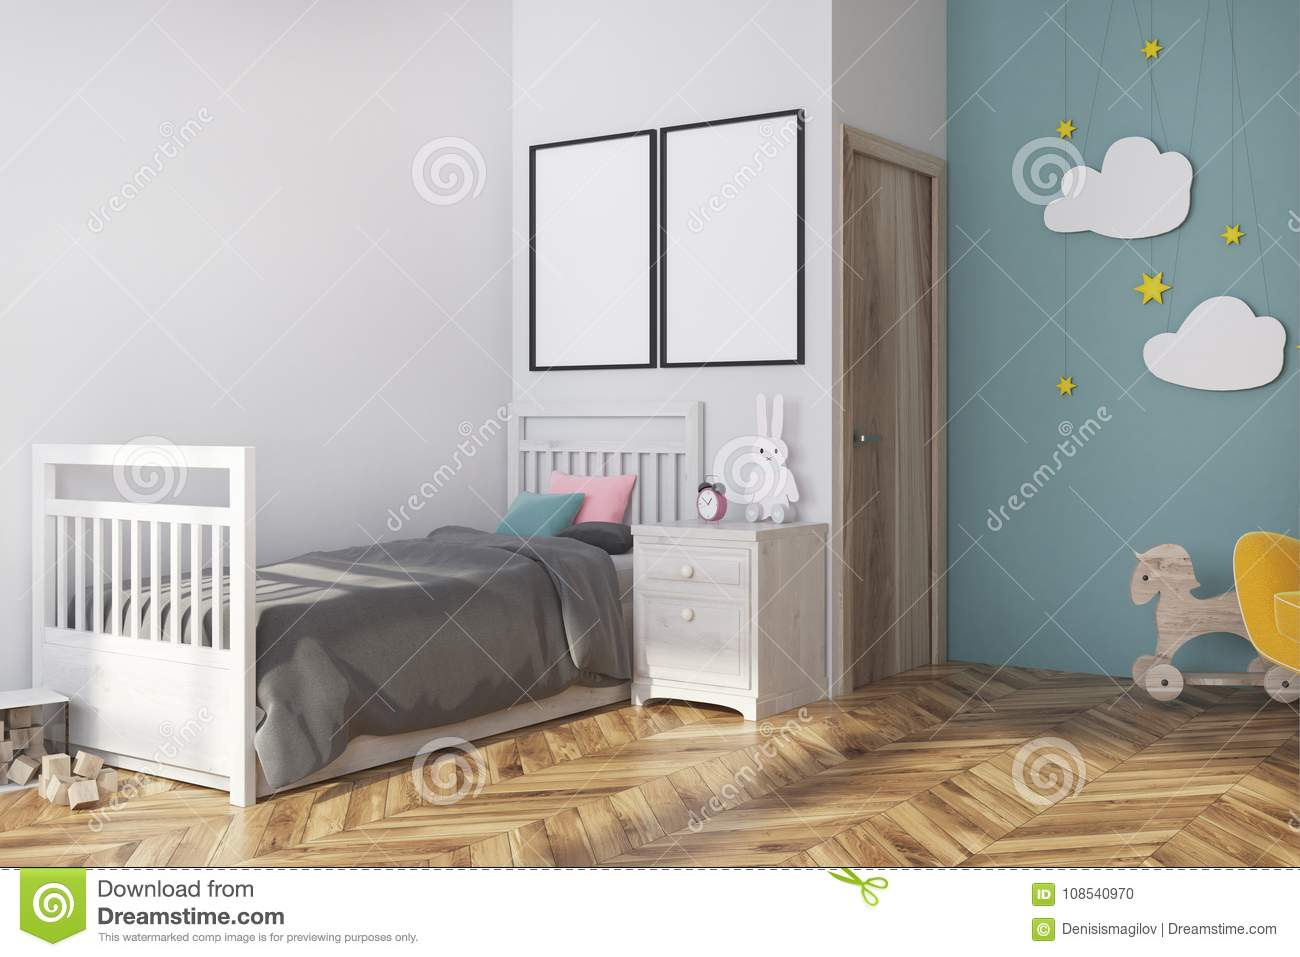 white blue nursery corner gray bed yellow armchair cloud decoration two vertical posters d rendering mock up interior